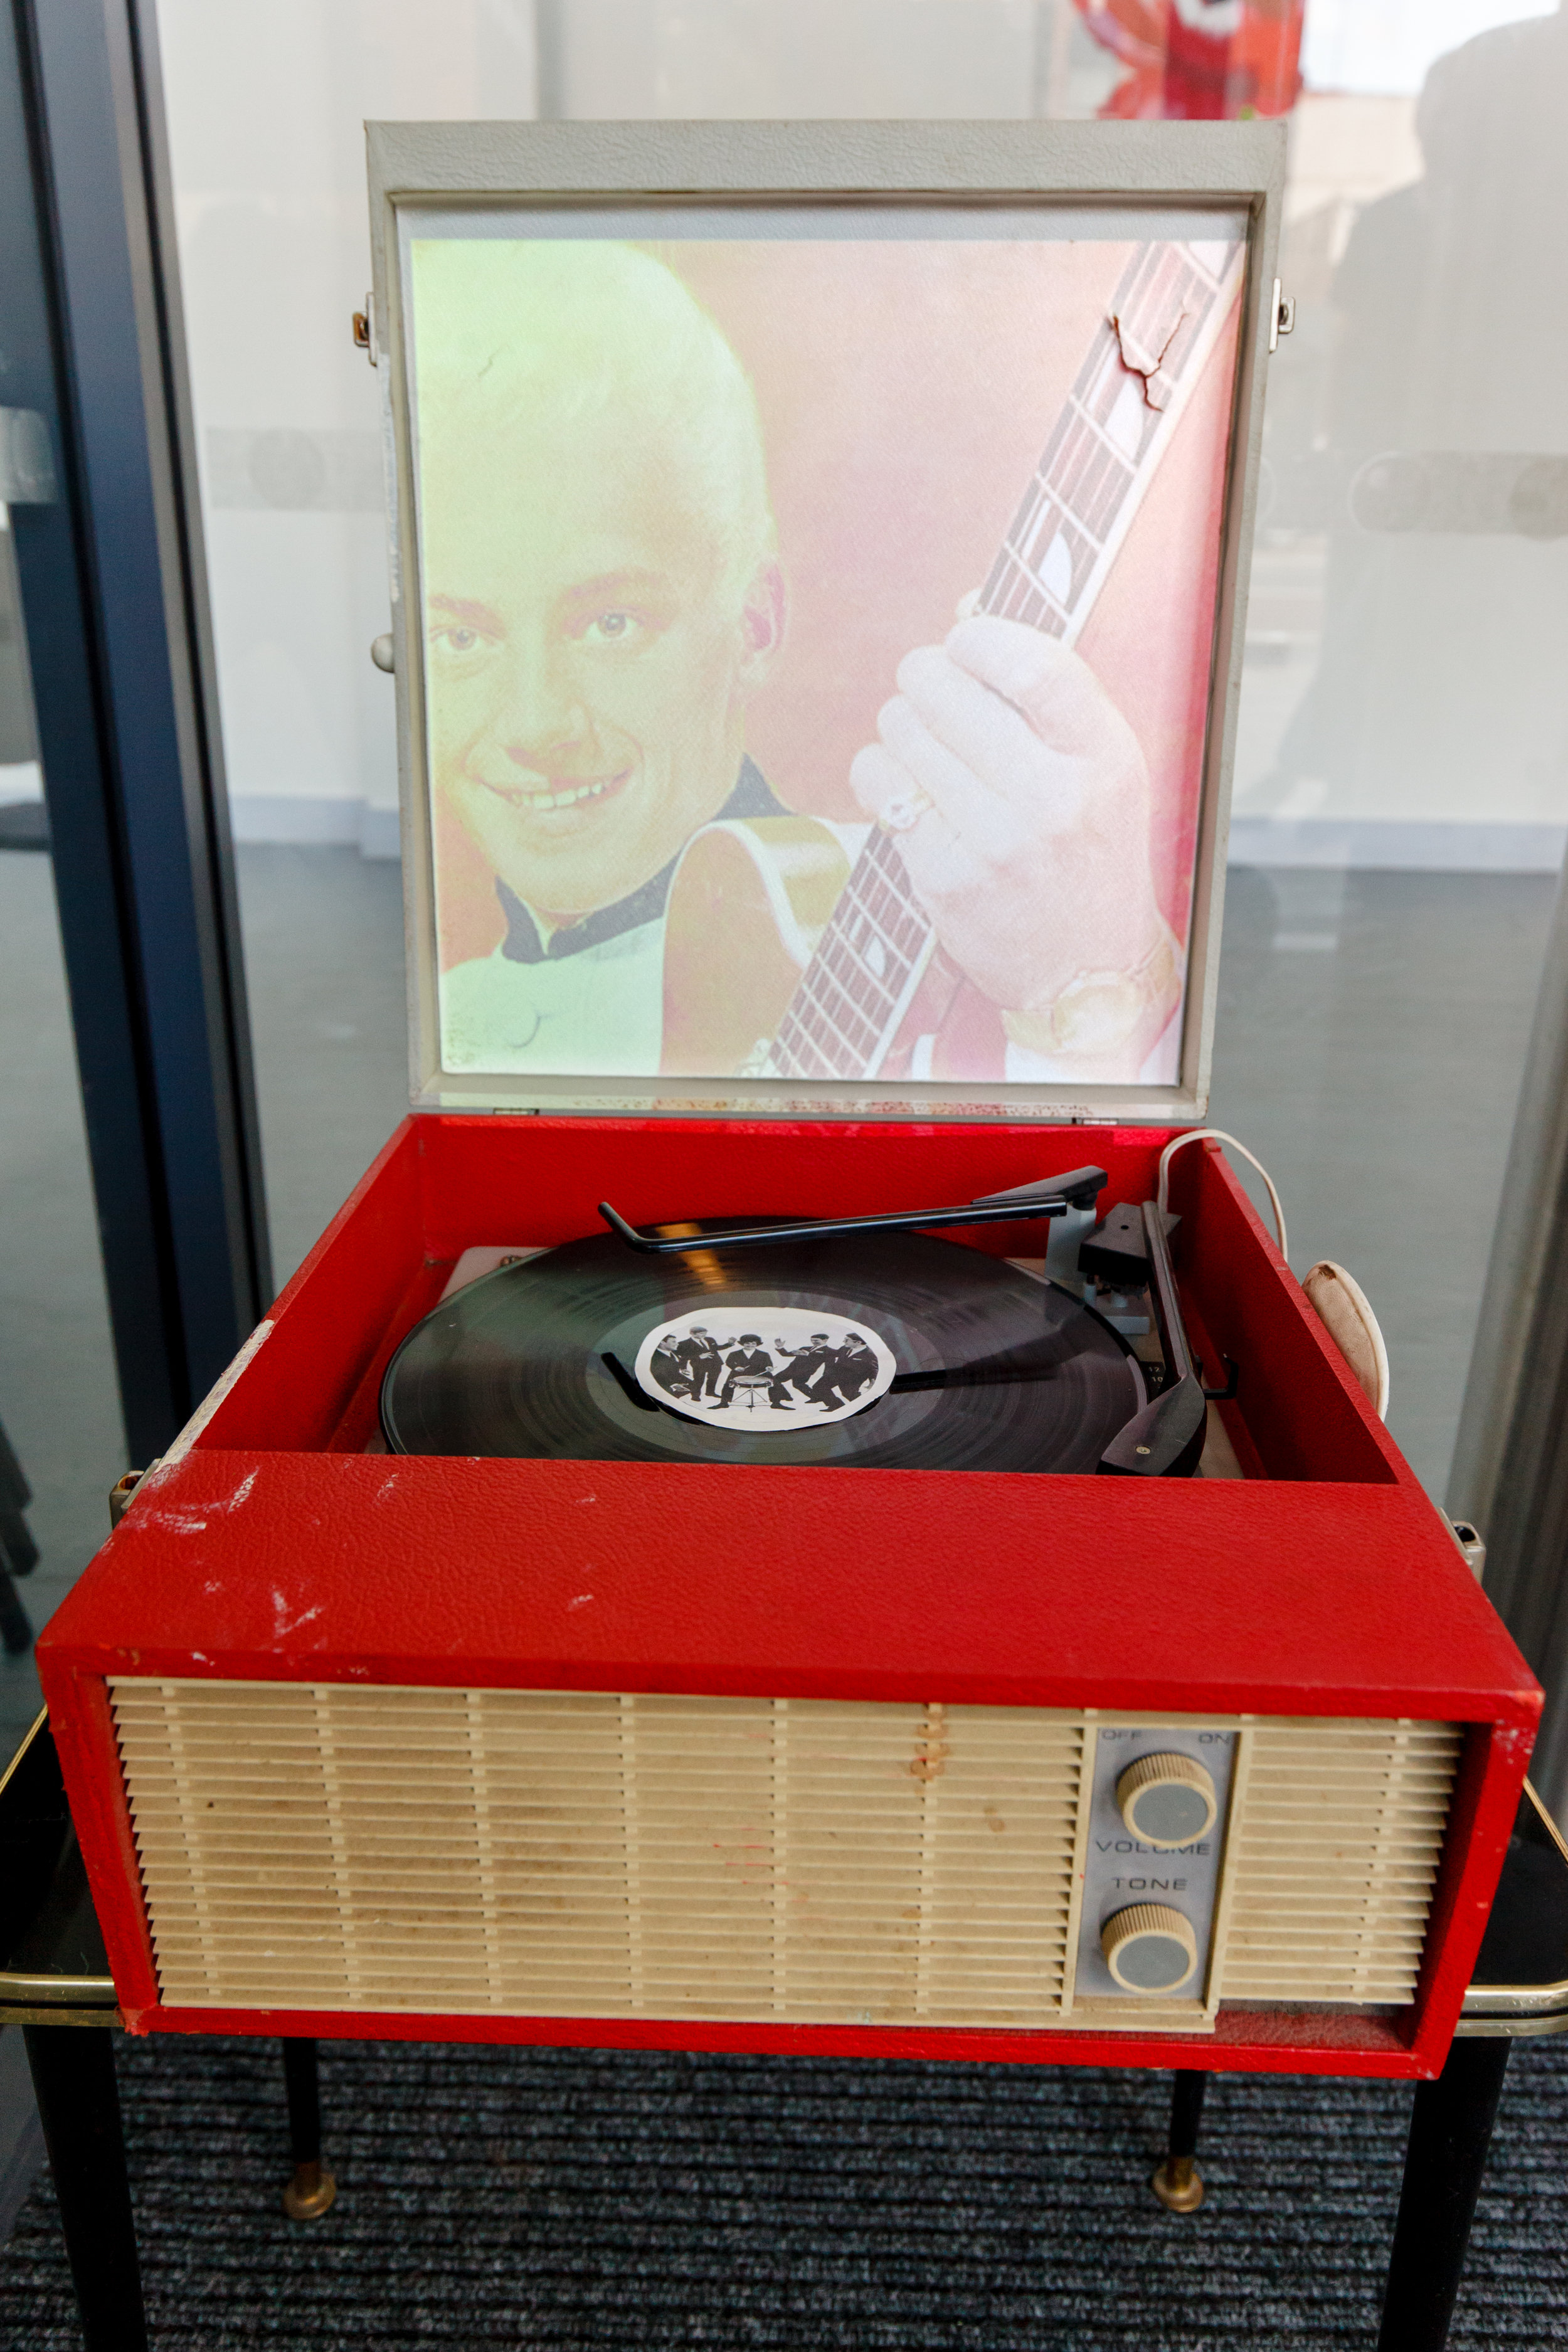 The Ghost-in-the-machine Man - A dansette record play with moving image projected into the lid showing footage montaging sixties horror films that Joe Meek loved with images of Heinz, the wannabe pop star that Joe Meek created and fell in love with and whose bleached hair was a reference to the film 'Day of the Dead'.